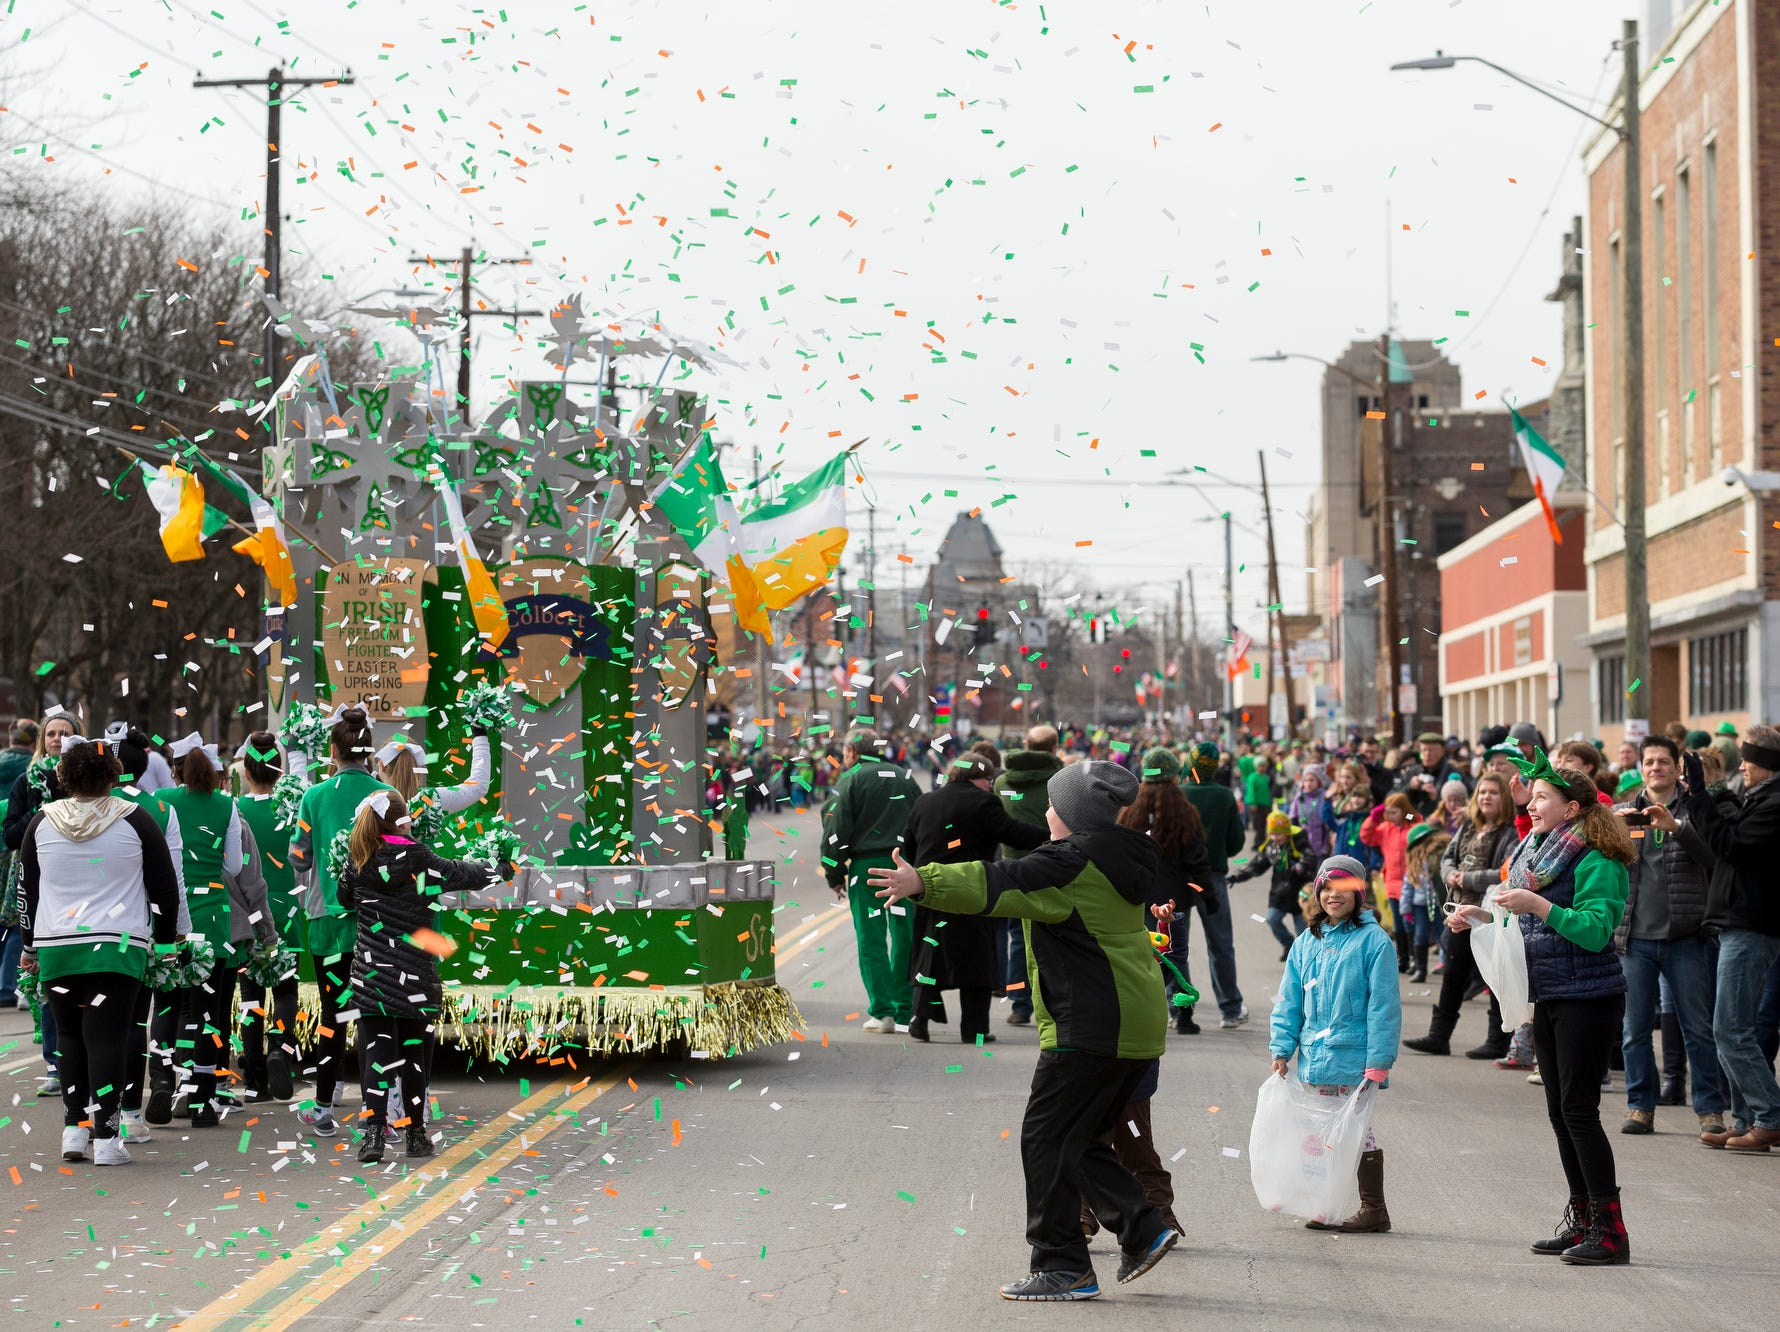 2016: The 49th annual St. Patrick's Day Parade on Saturday in Binghamton.